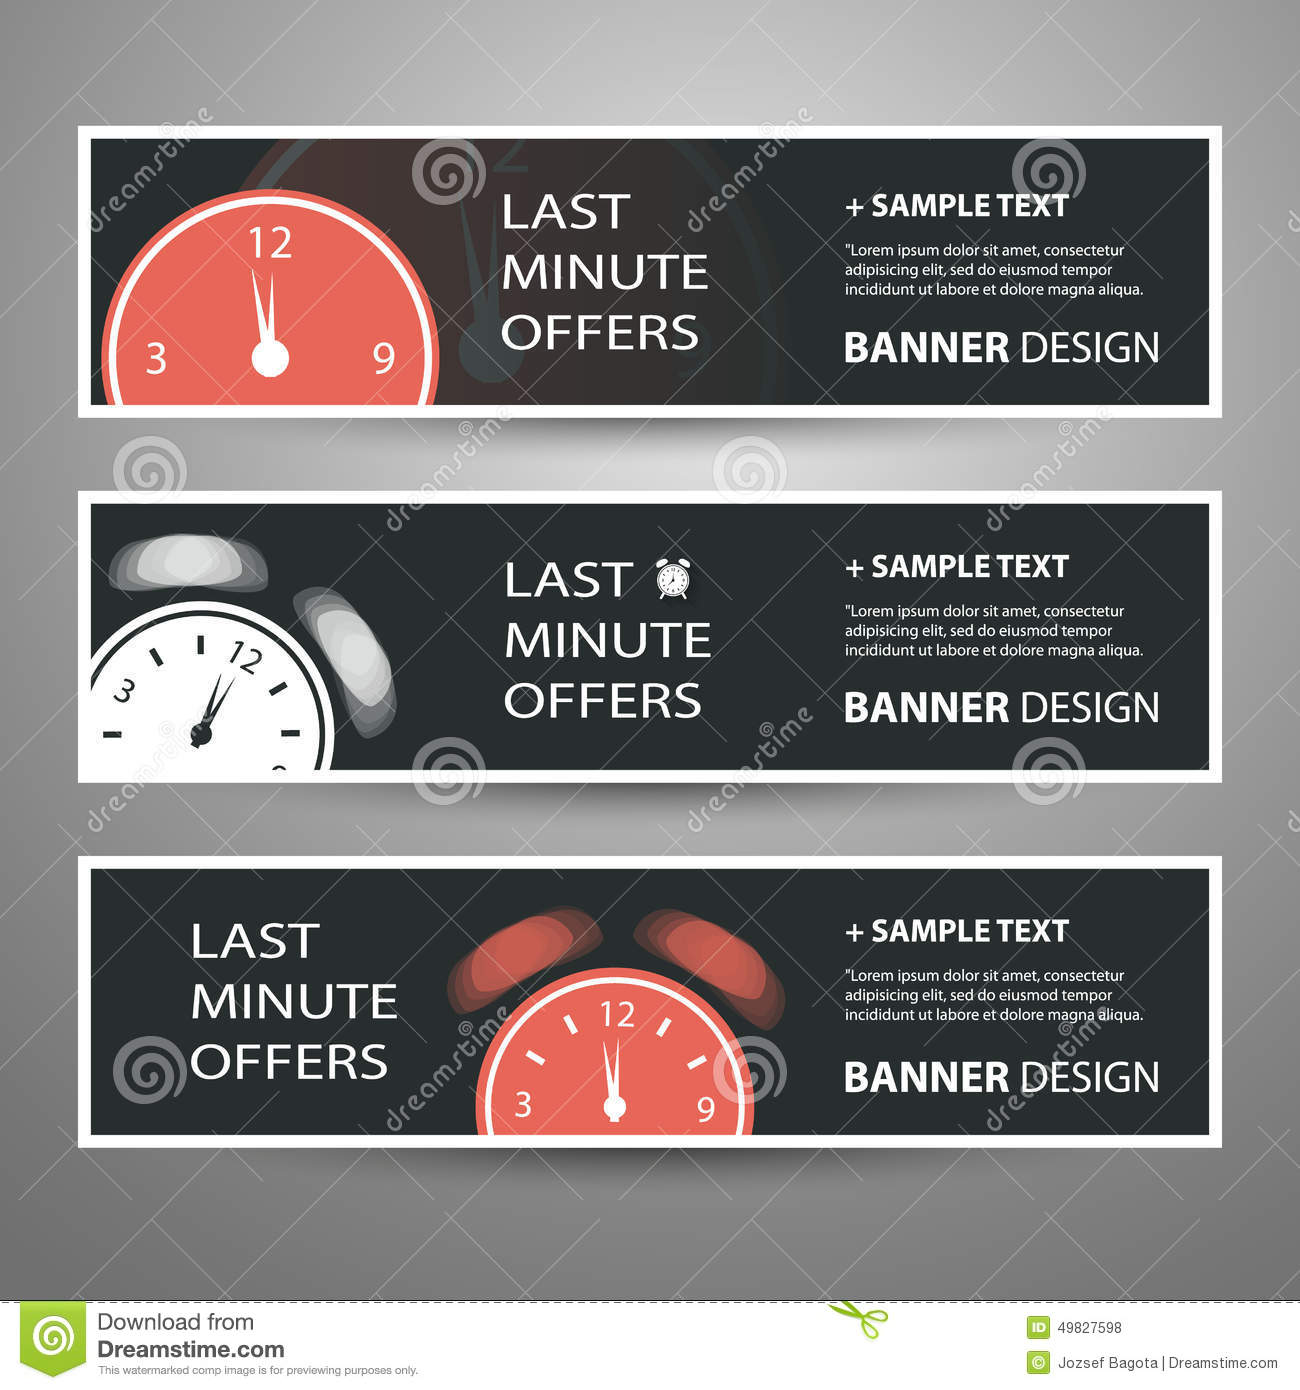 Last Minute Offer Banners for Your Advertisement